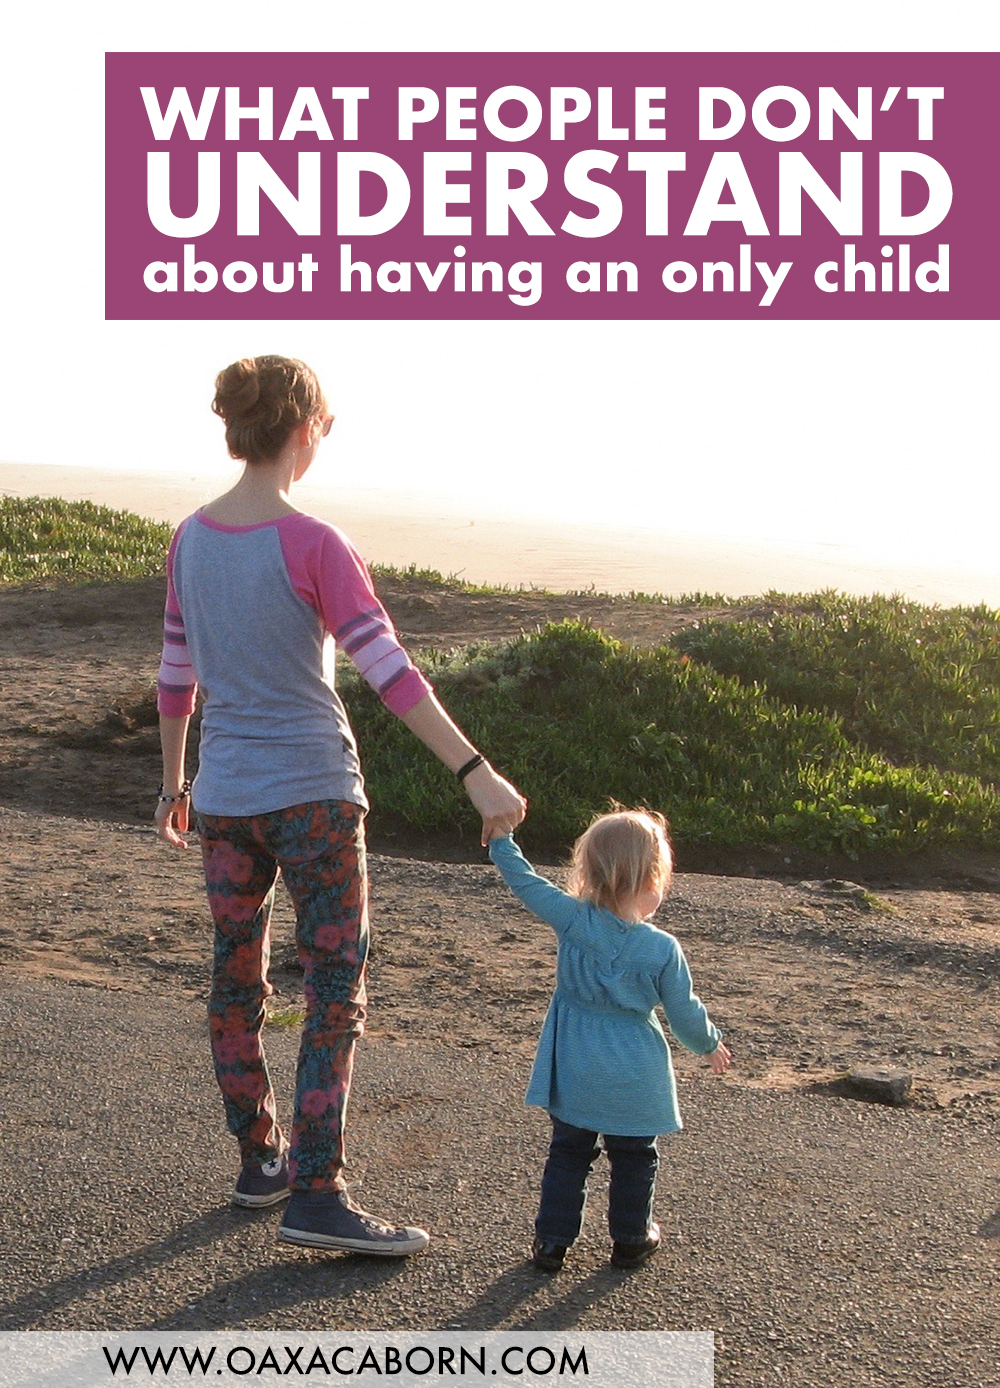 What People Don't Understand About Having an Only Child